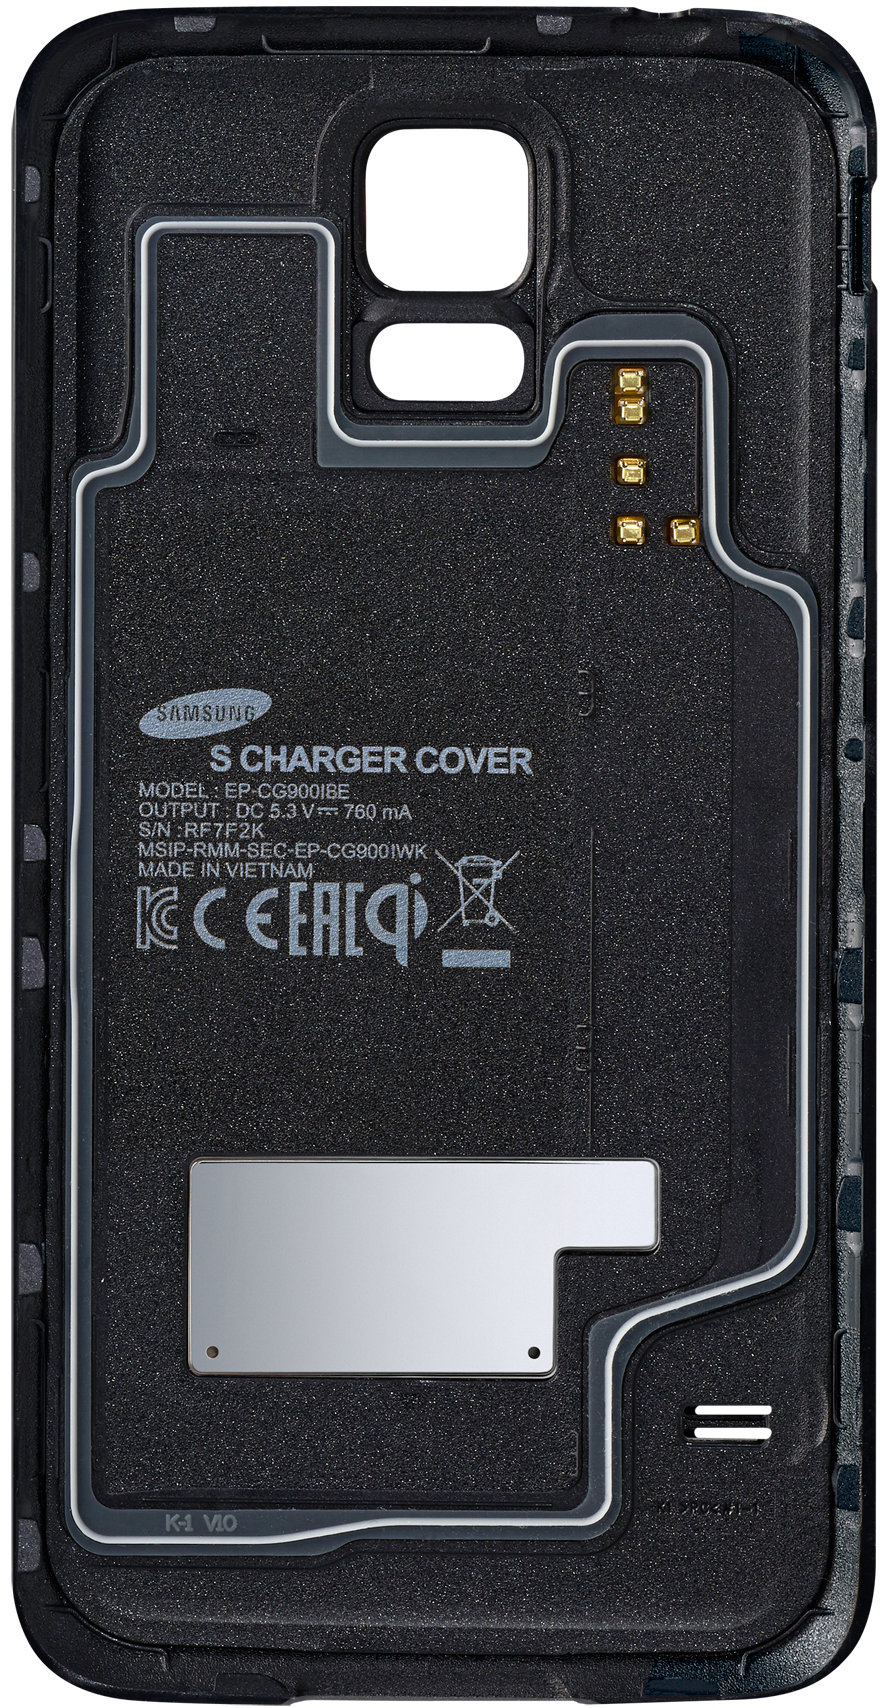 Samsung offers replacement wireless charging backs for various phones, including its Galaxy S5.